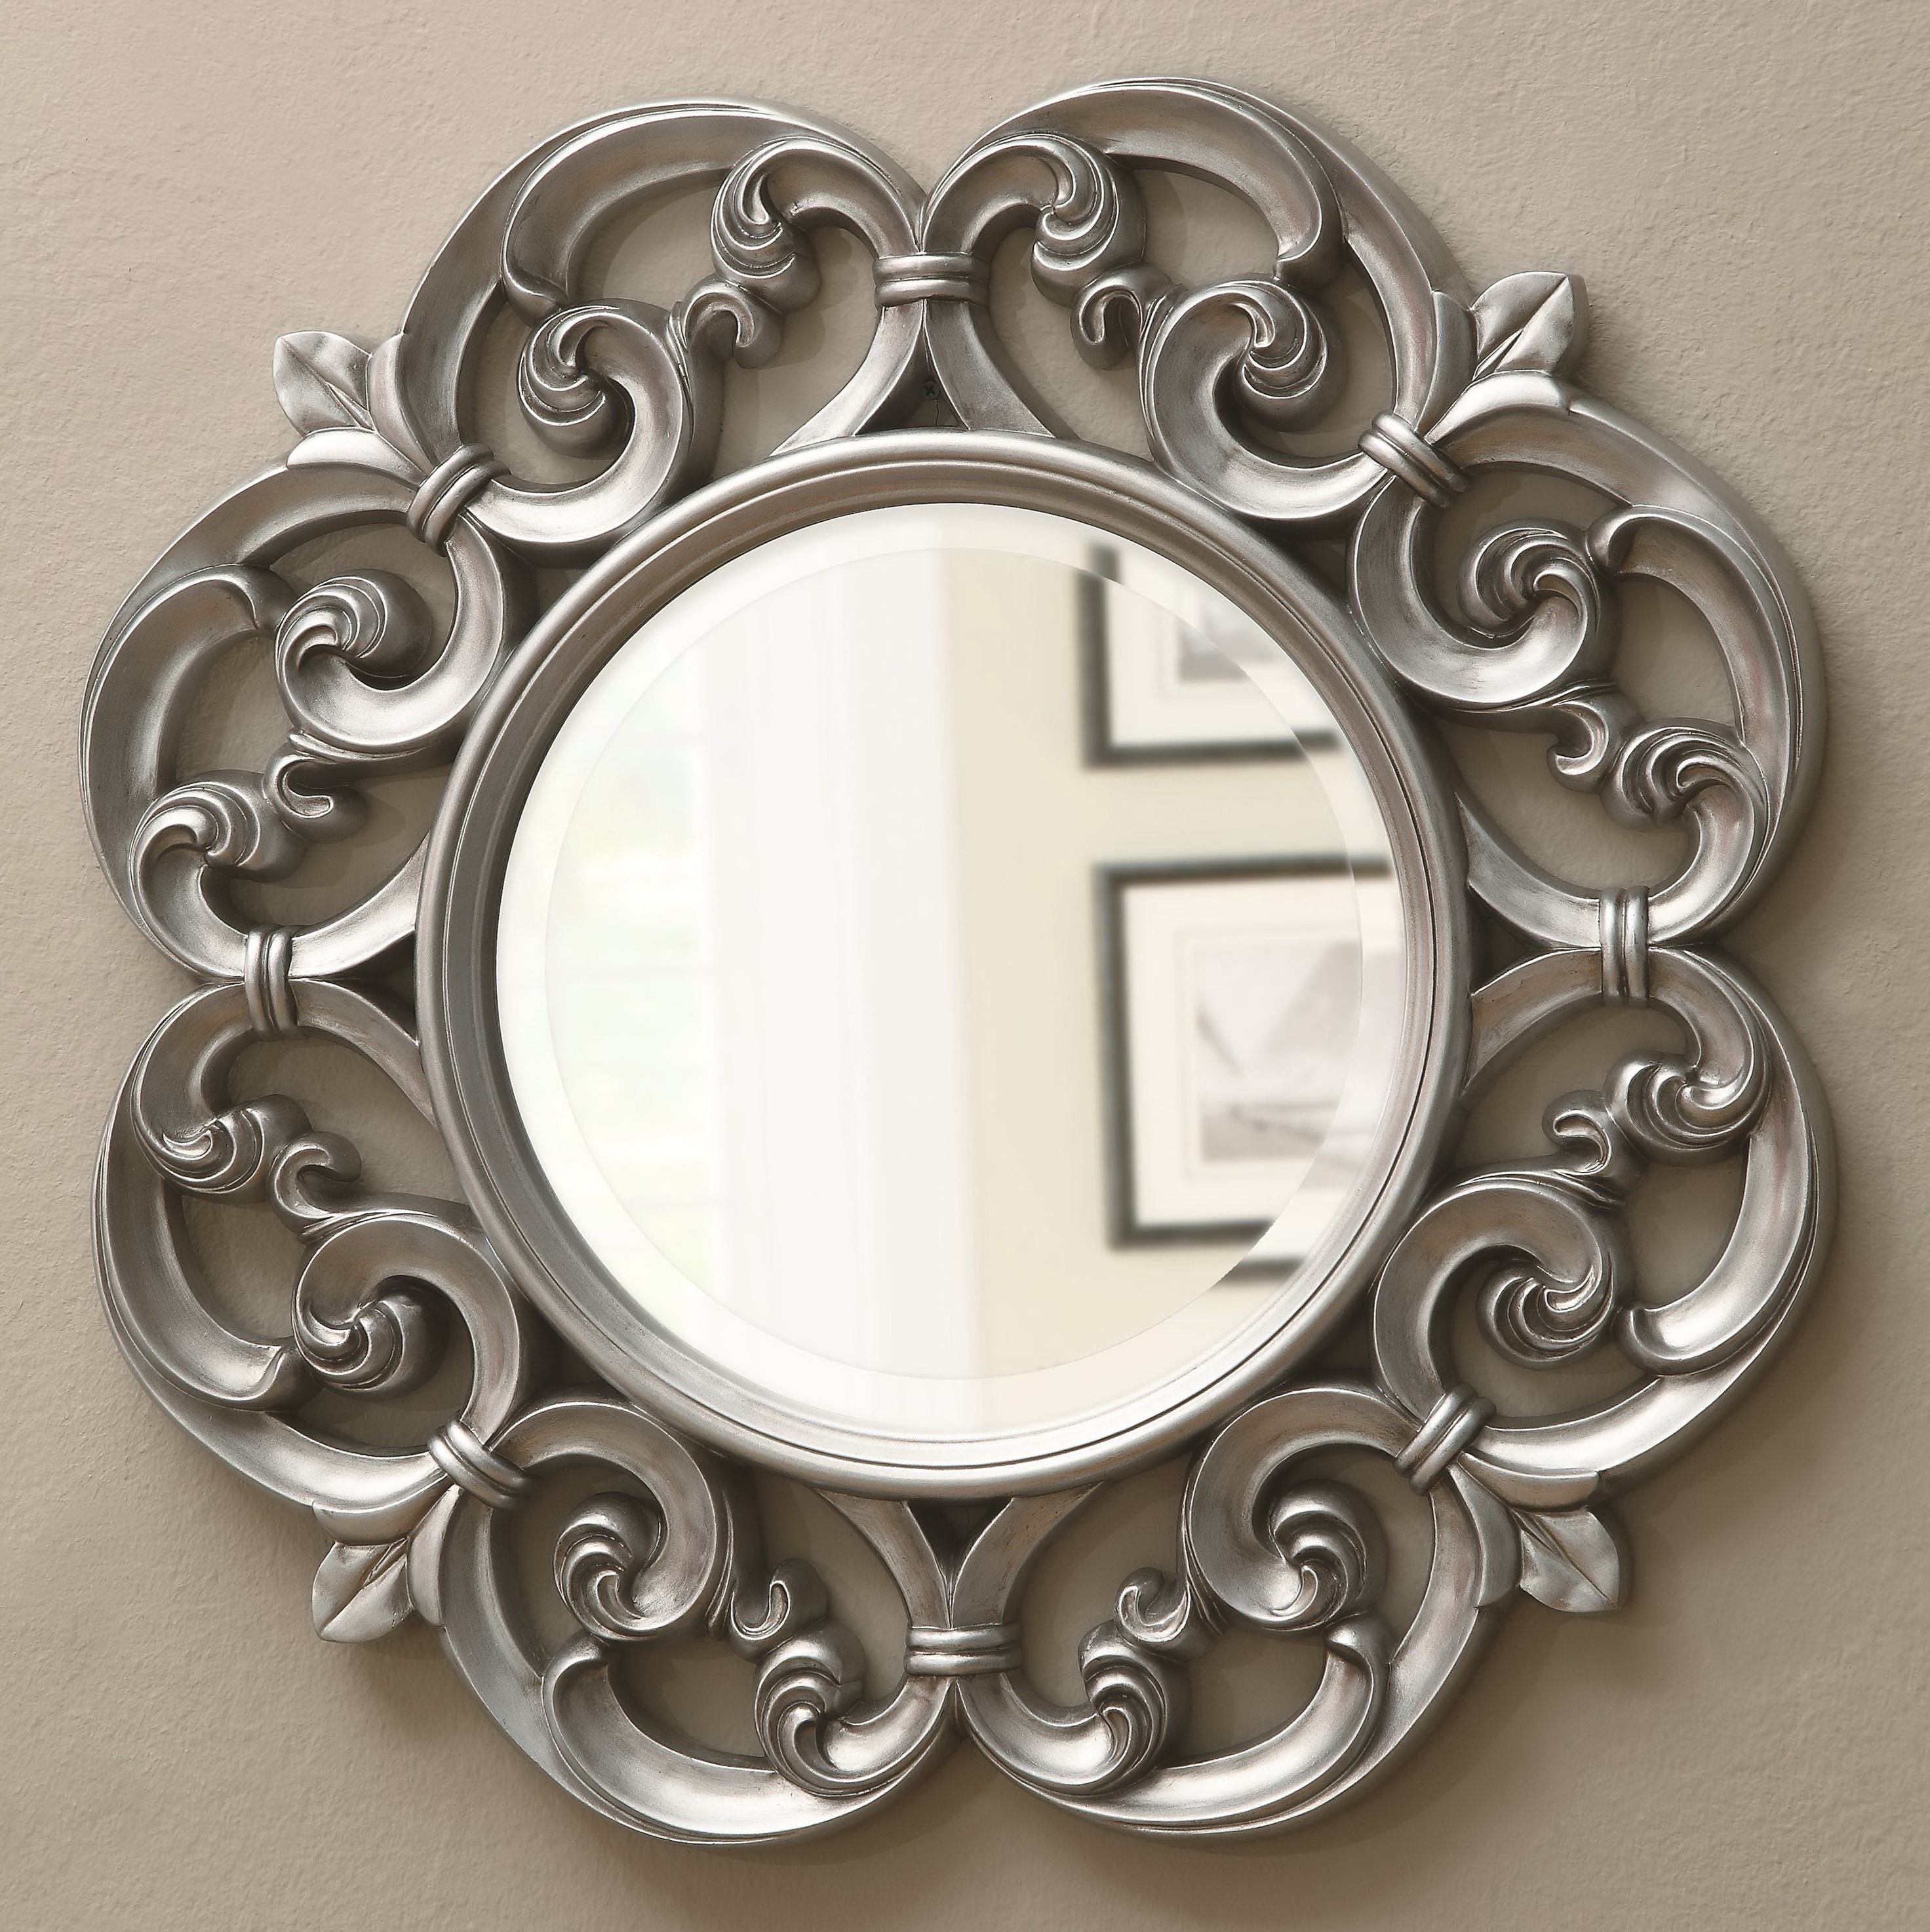 Round silver framed mirror home design ideas for Round silver wall mirror